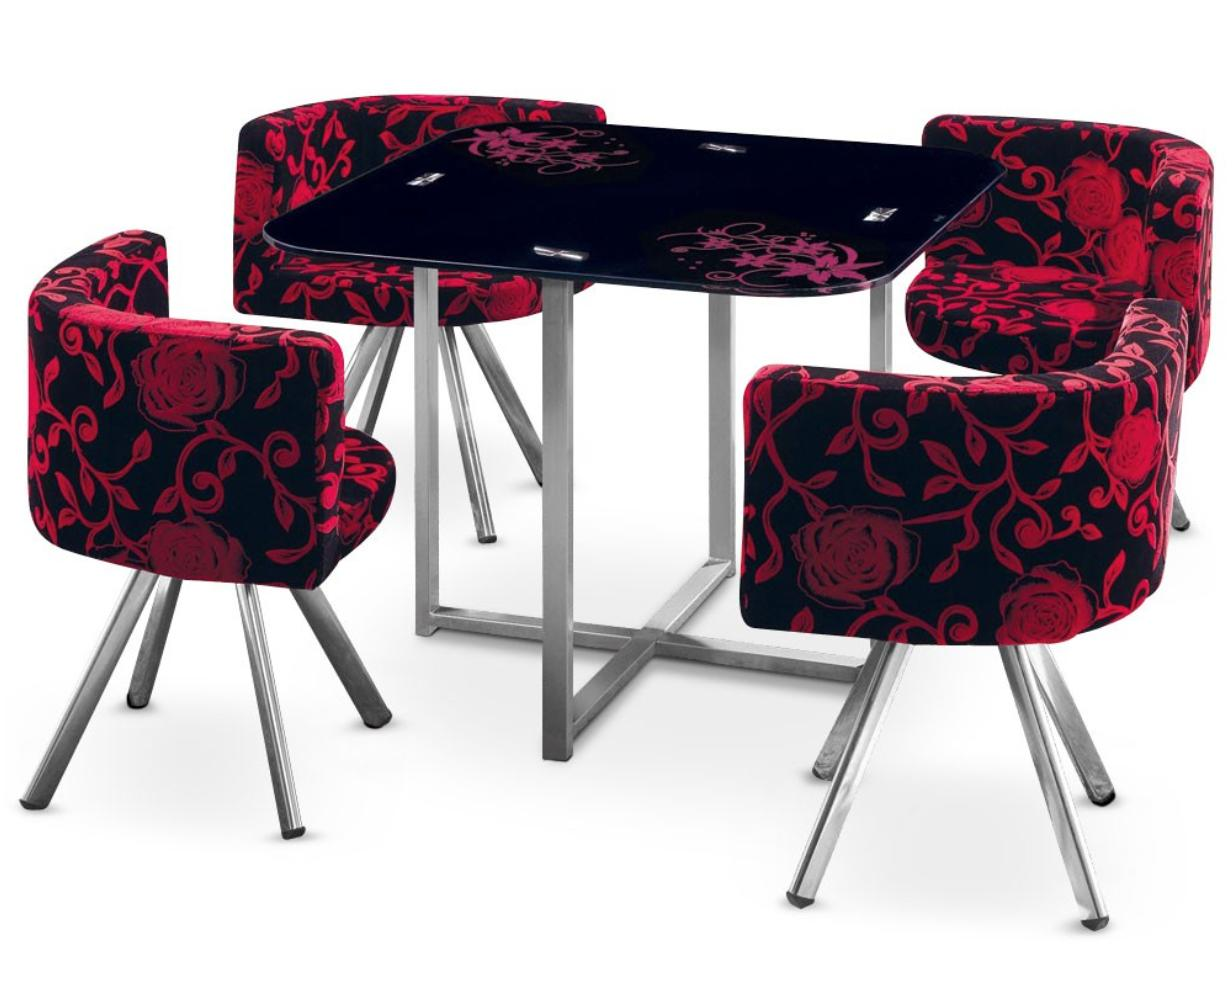 table et 4 chaises mosaic 90 fleurs rouge et noir. Black Bedroom Furniture Sets. Home Design Ideas